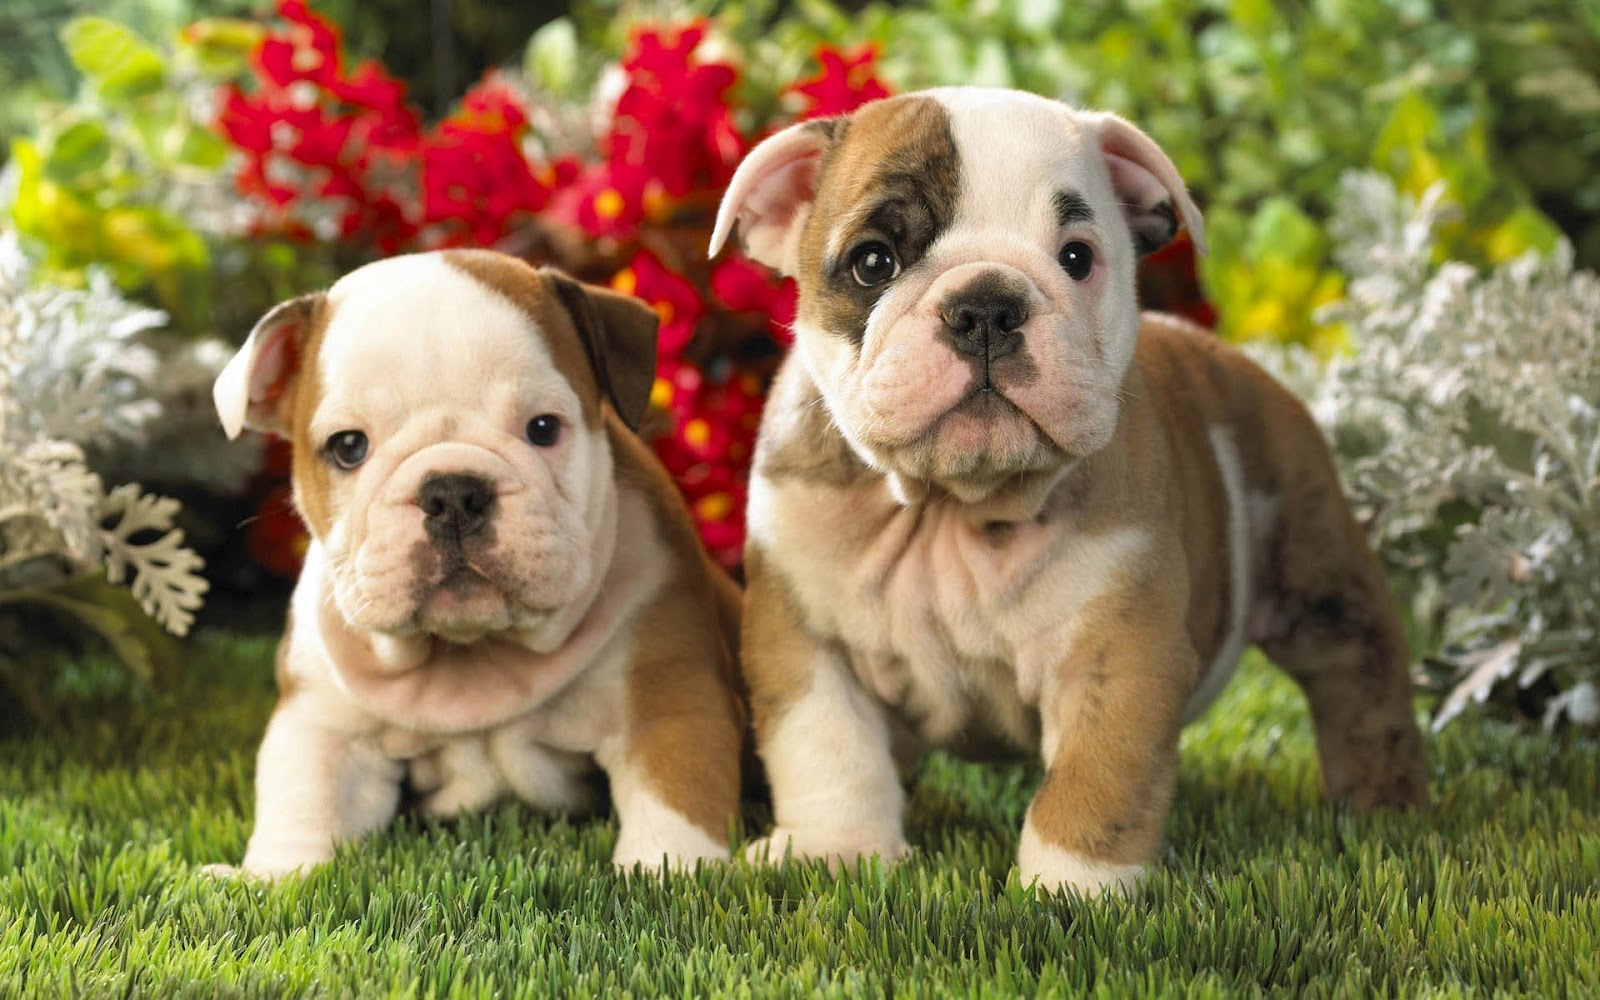 Bulldog Puppies Wallpaper HD